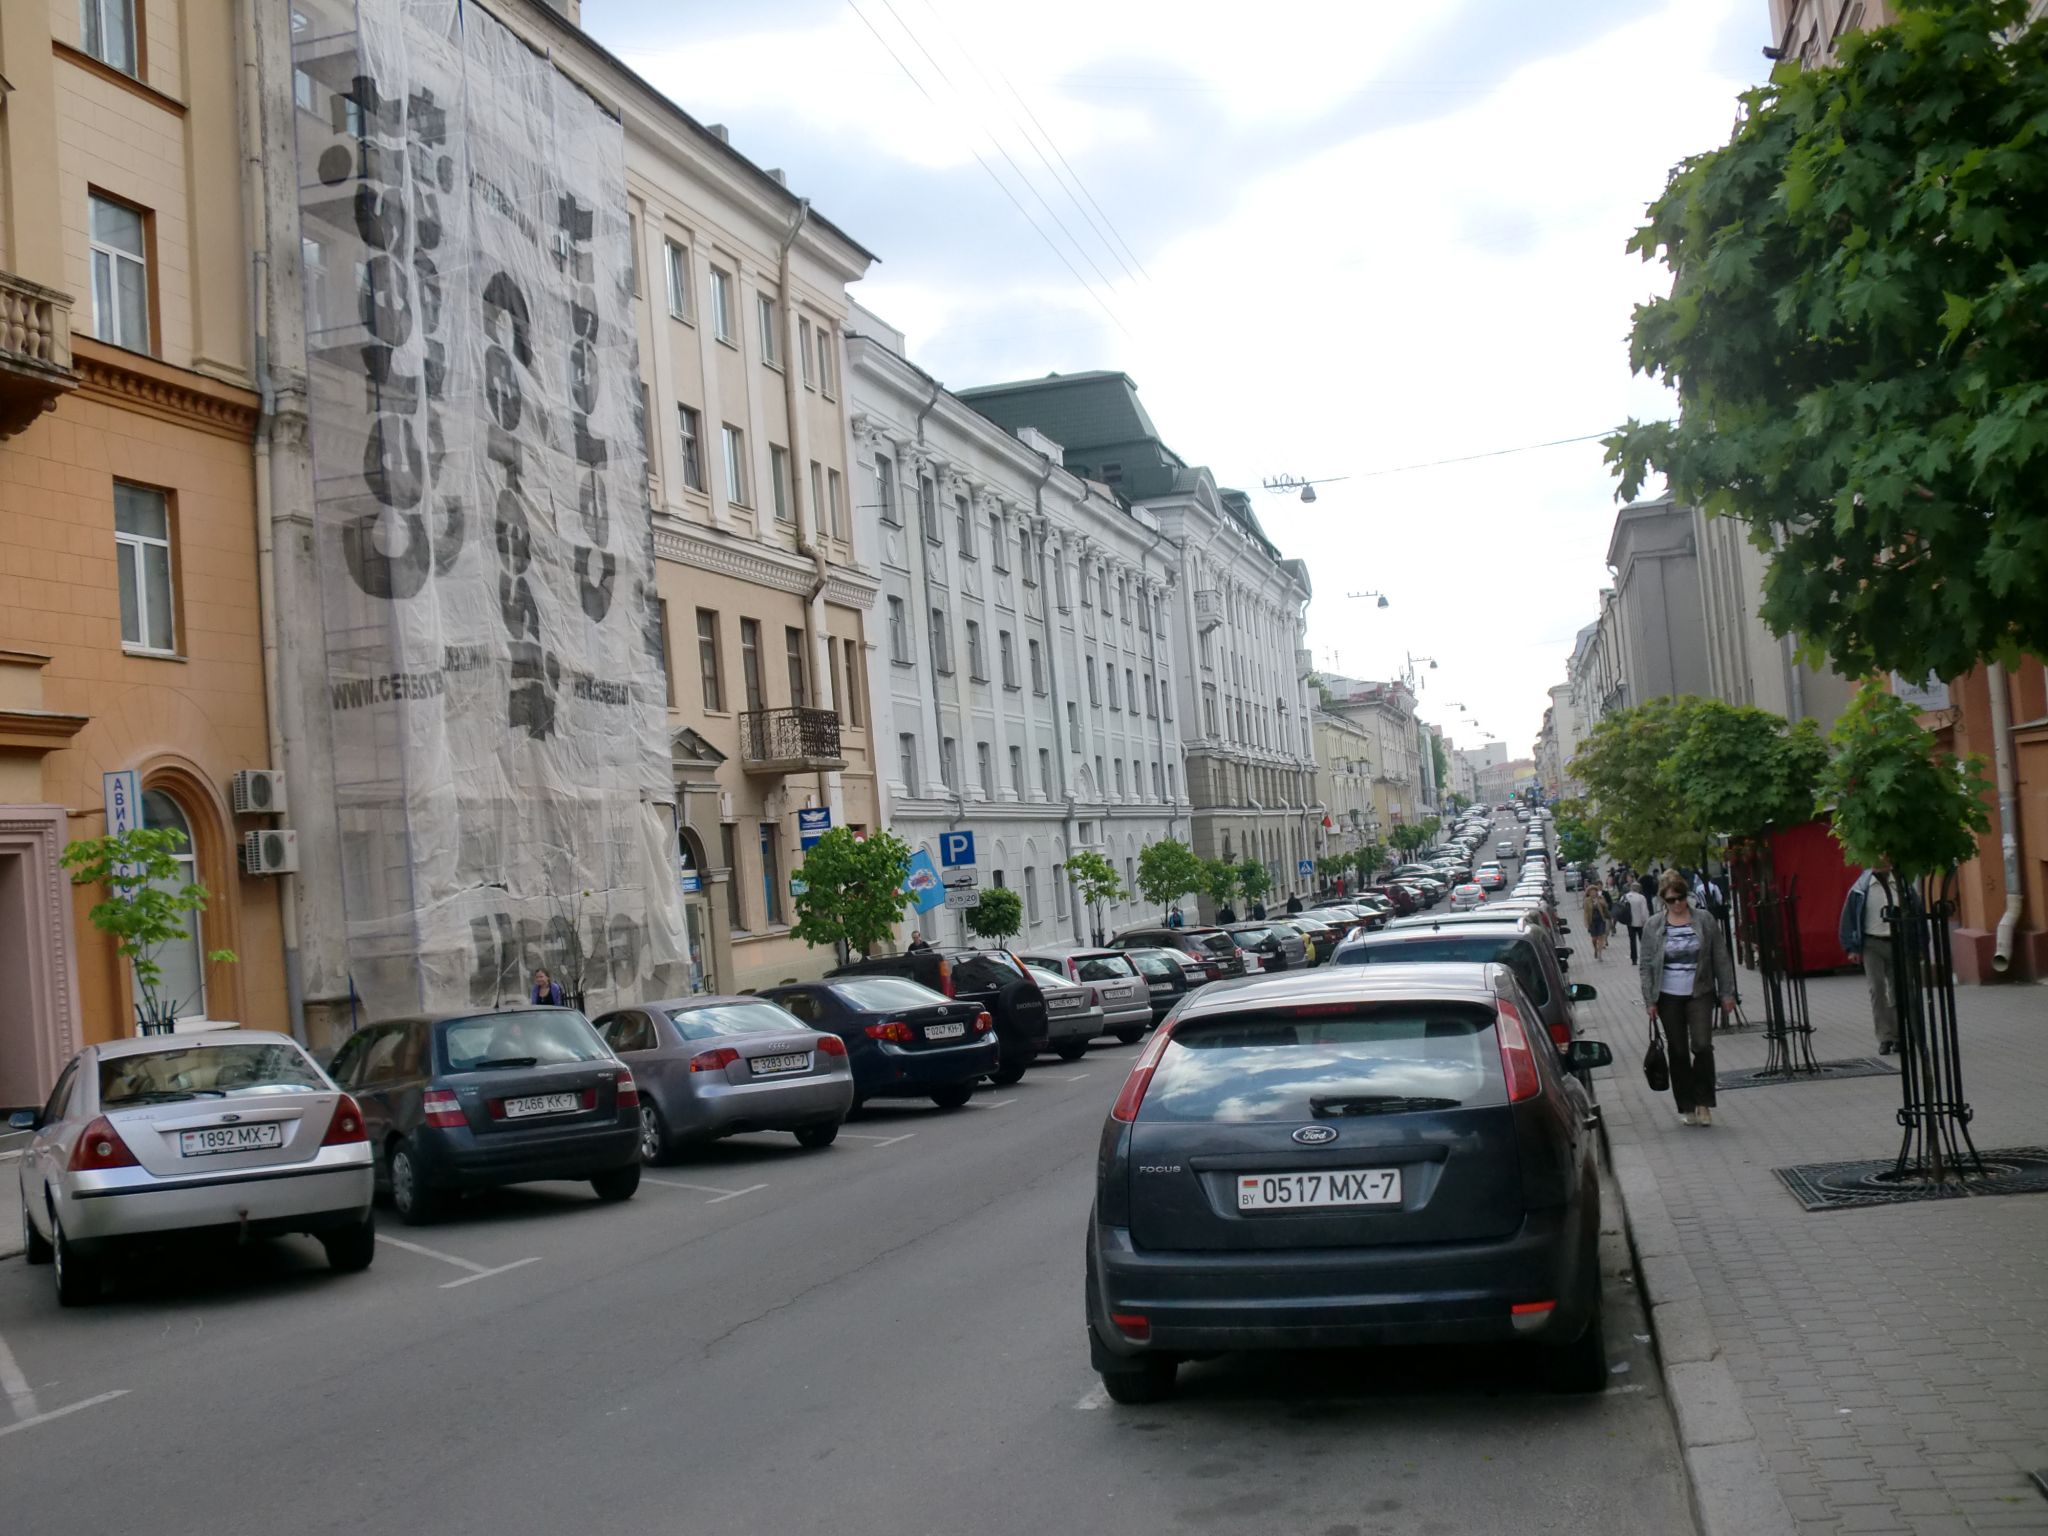 Minsk city 19 - Minsk, 1 amazing city you have to see